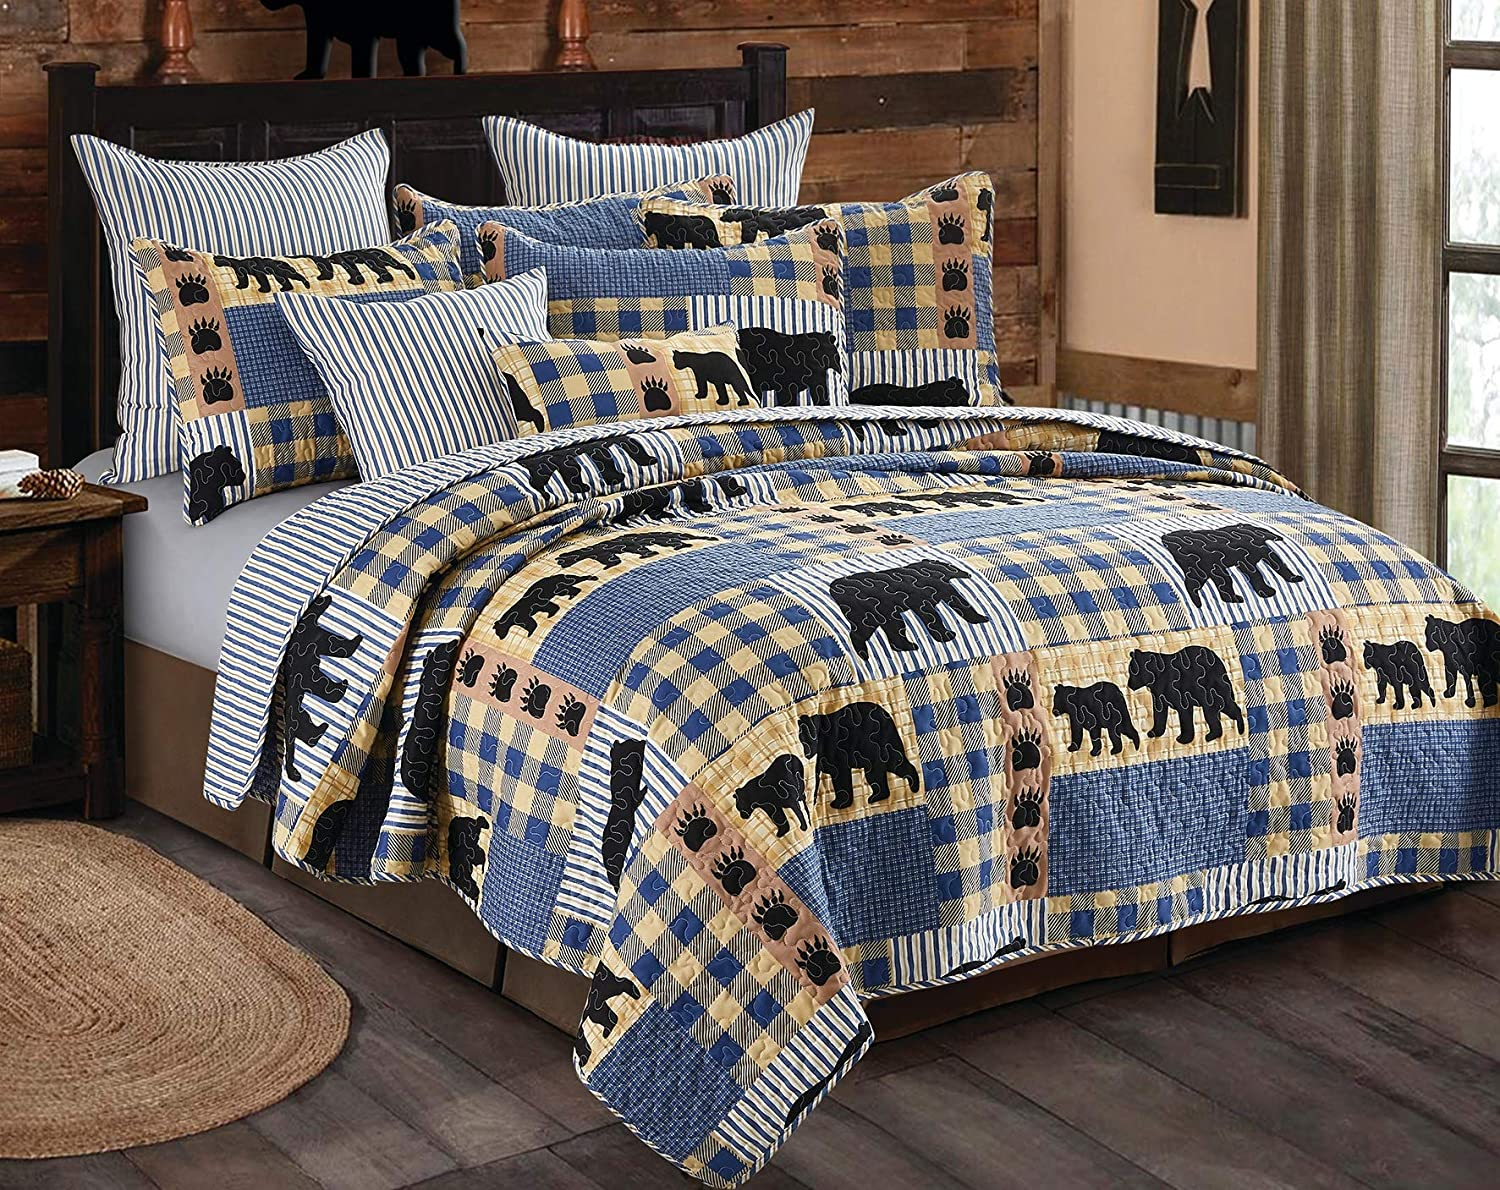 Virah Bella 3 Piece Black Bear Blue Plaid Quilt Set (King)